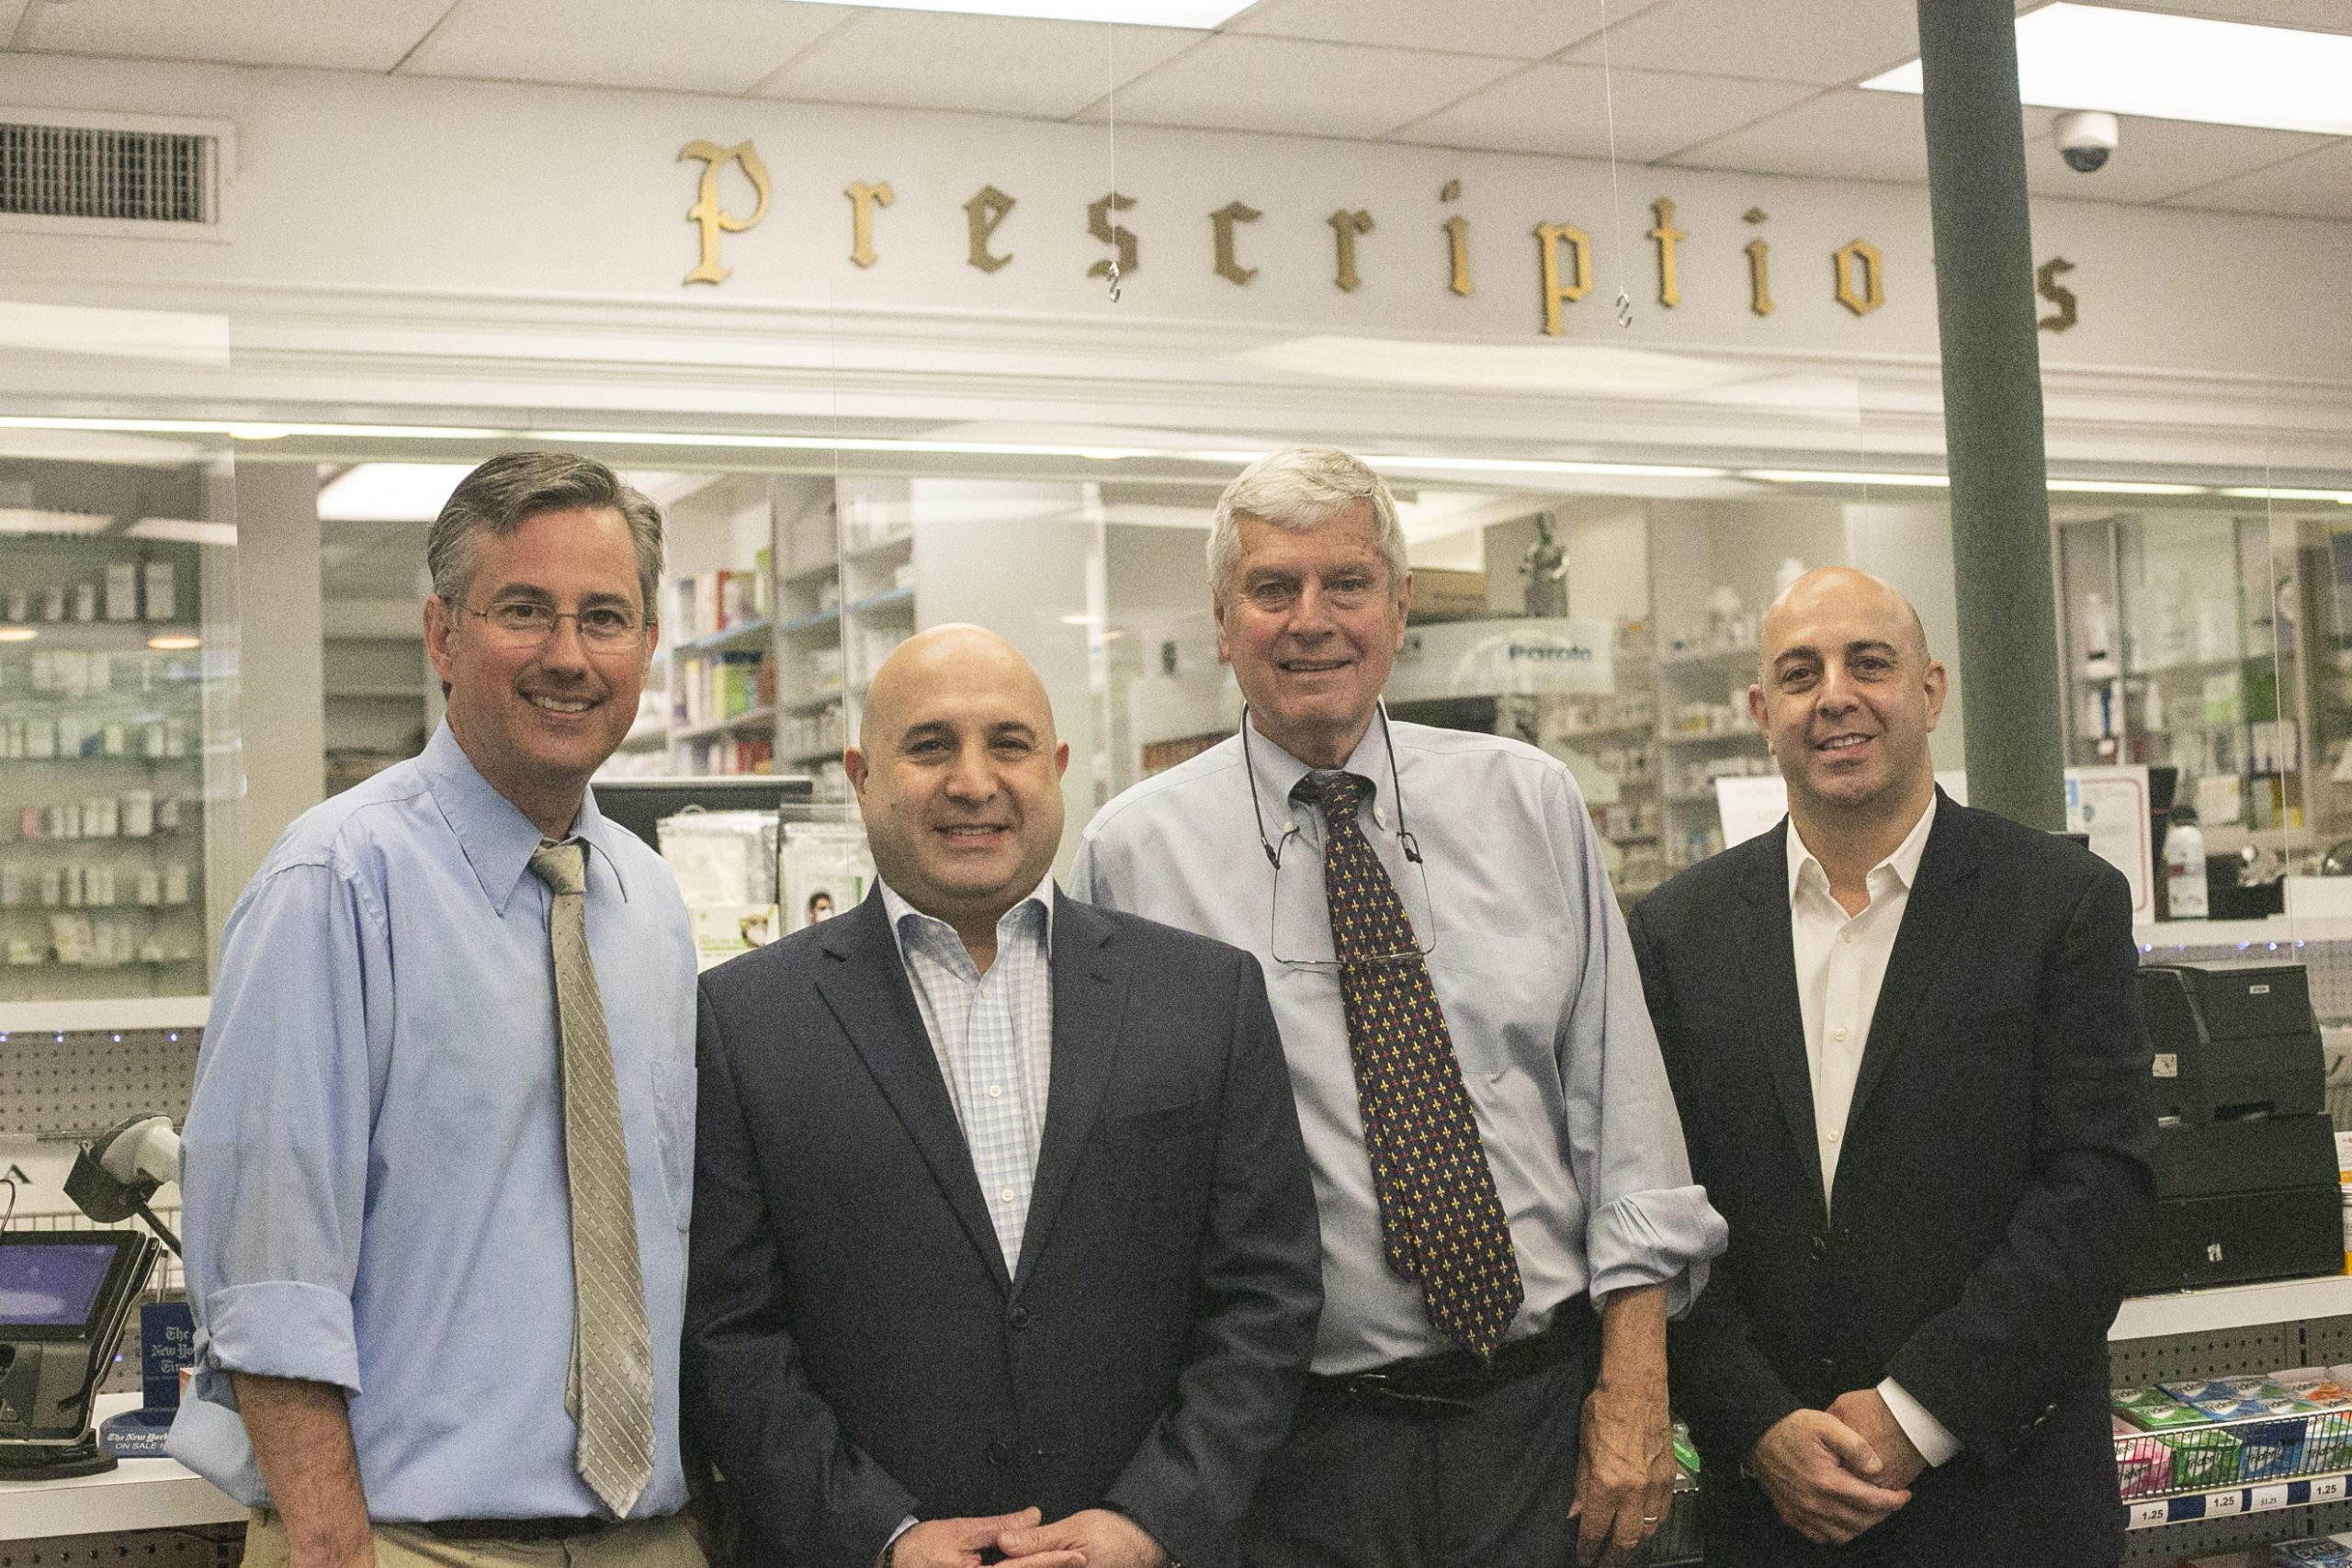 new and former owners of Theatre Pharmacy